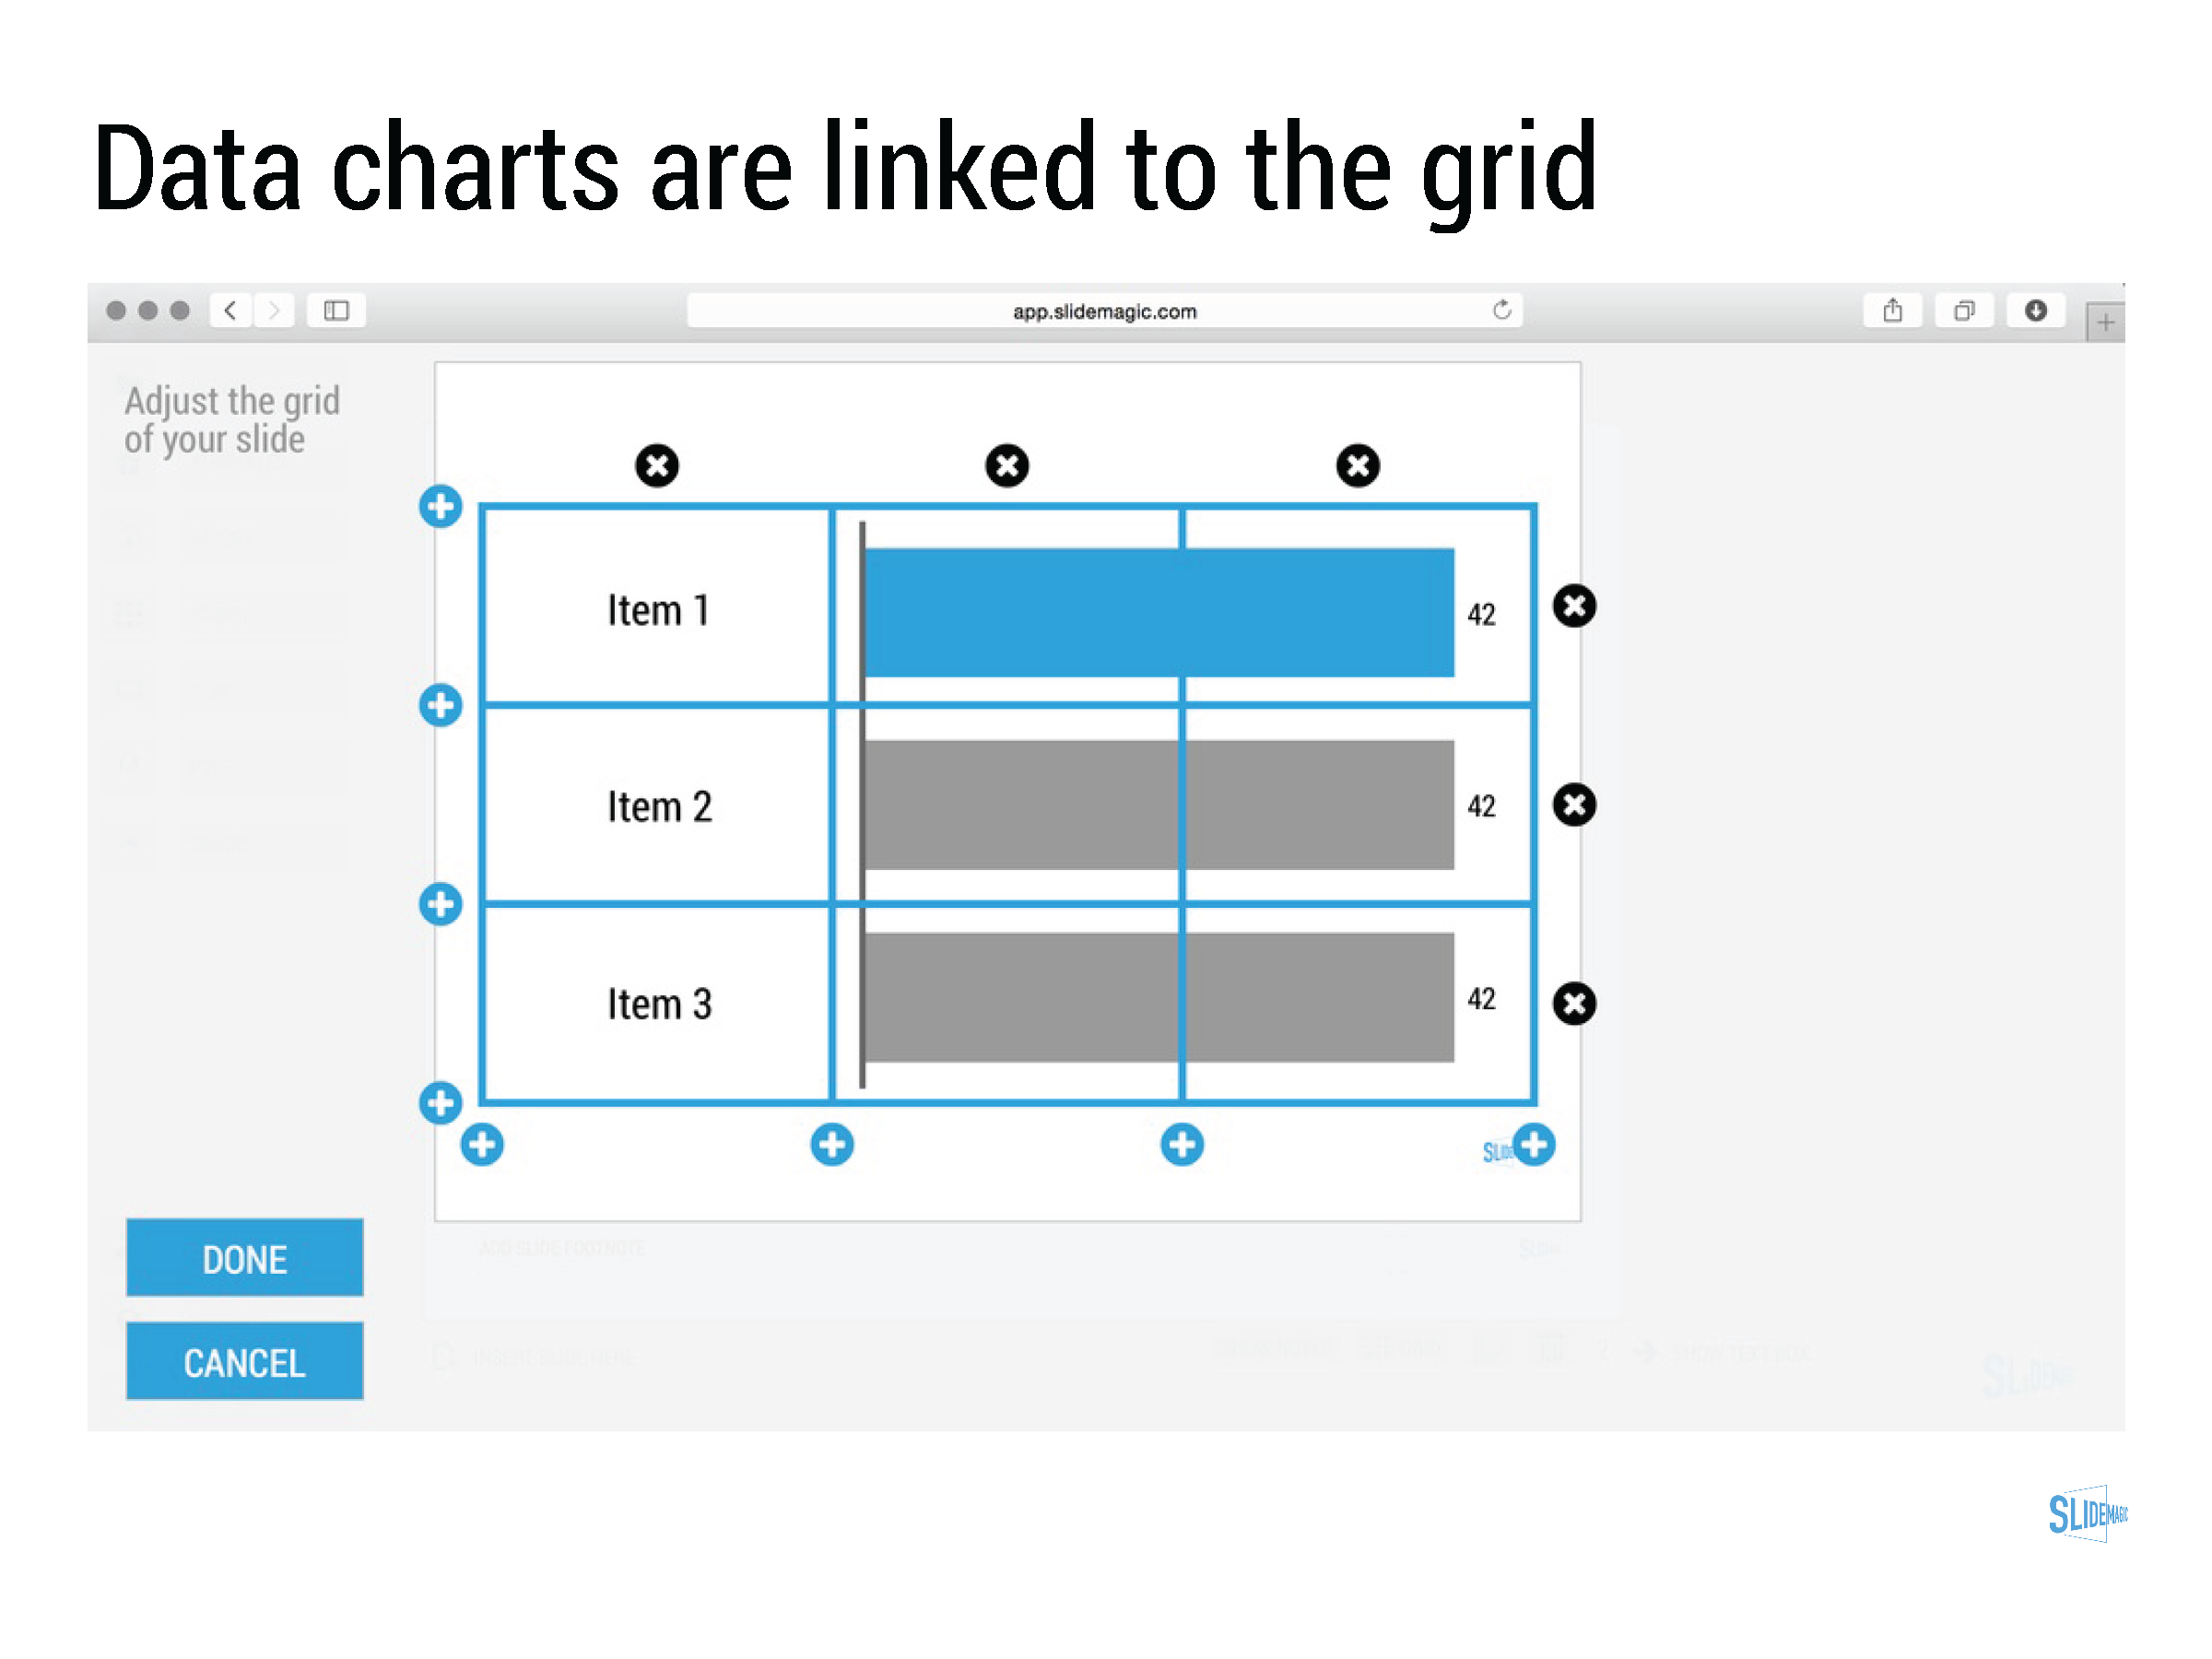 Working-with-data-charts_Page_04.png